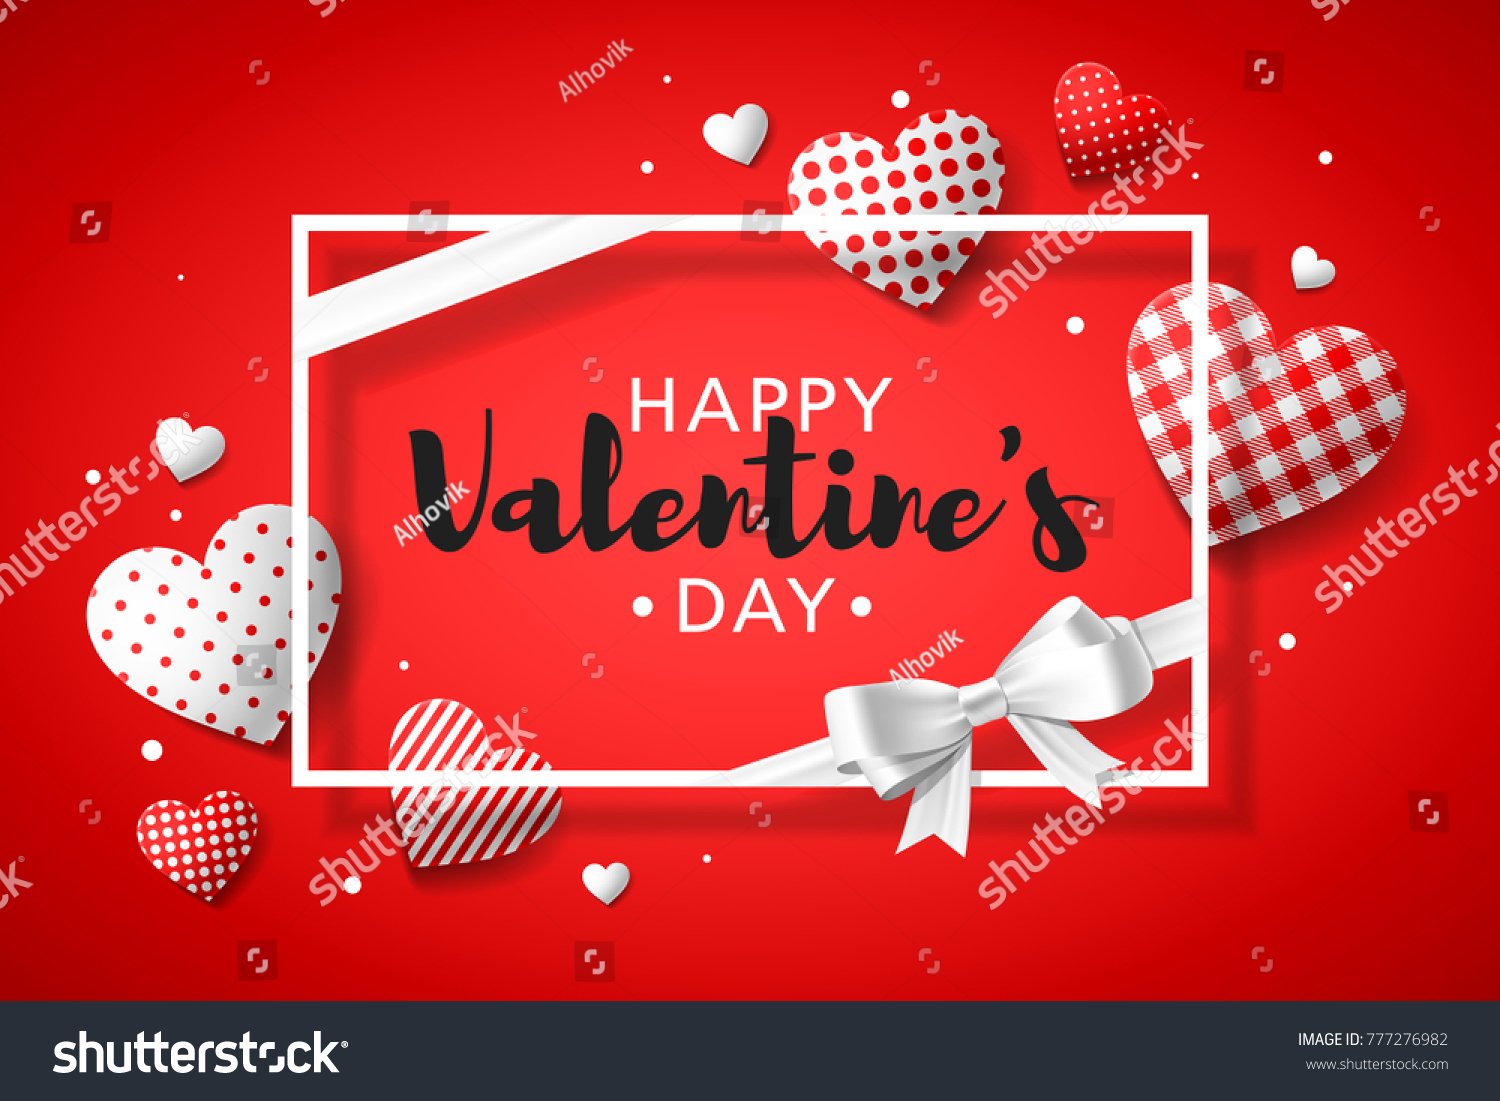 Happy Valentines Day Greeting Card Design Stock Vector Royalty Free